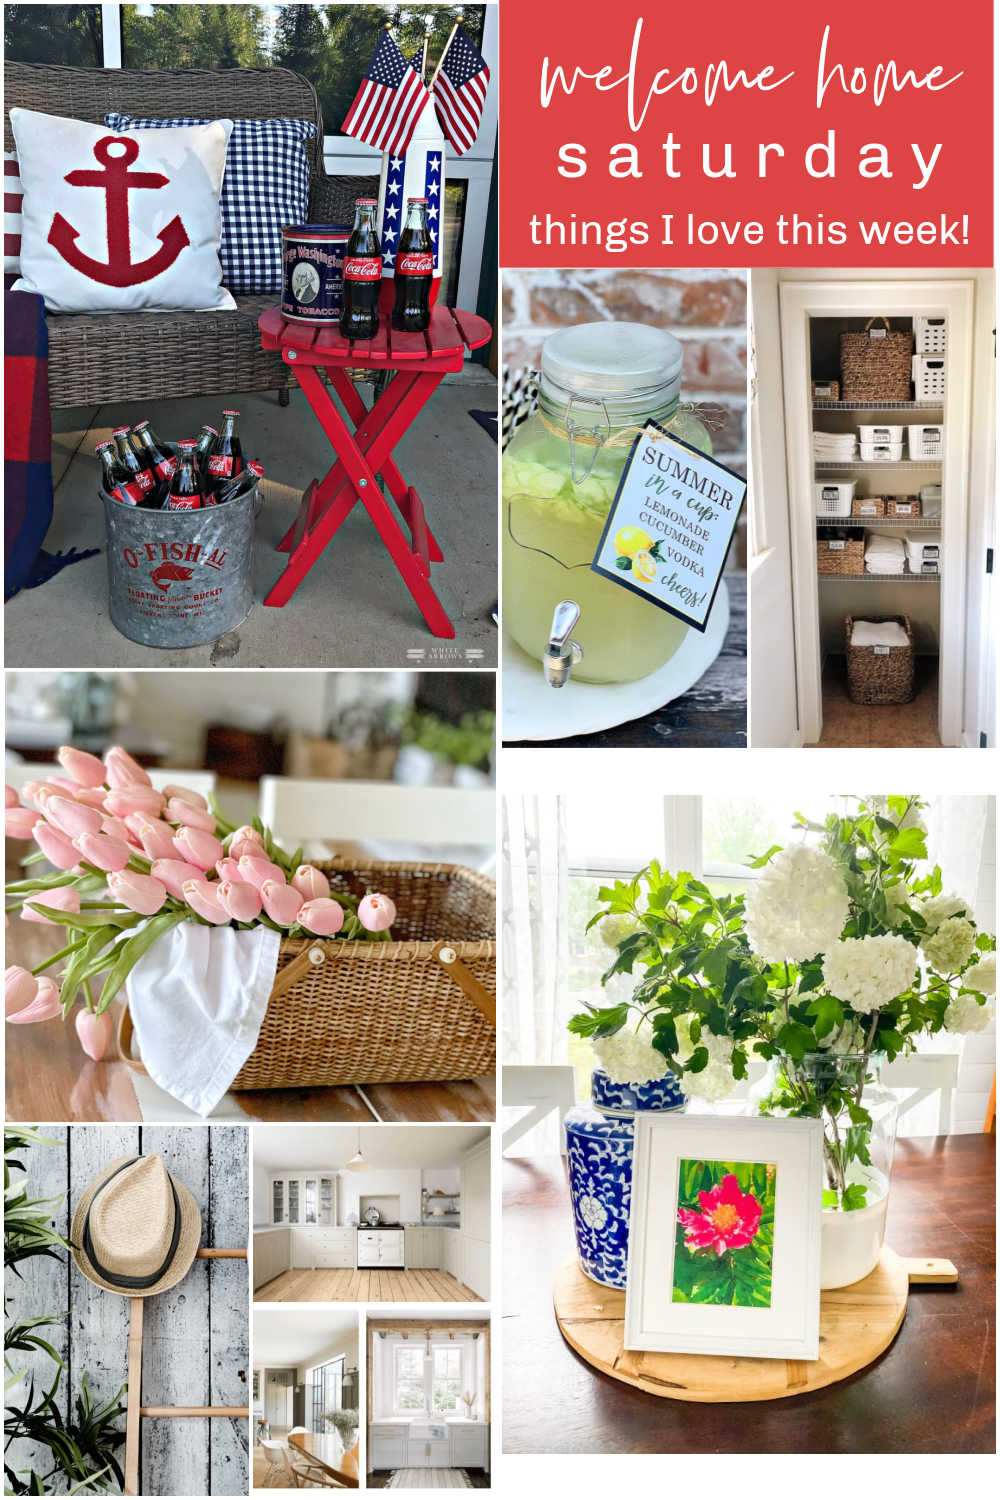 Welcome Home Saturday with Pasha is Home. Each Saturday I will share a few of my favorite things and some DIY ideas that I love!